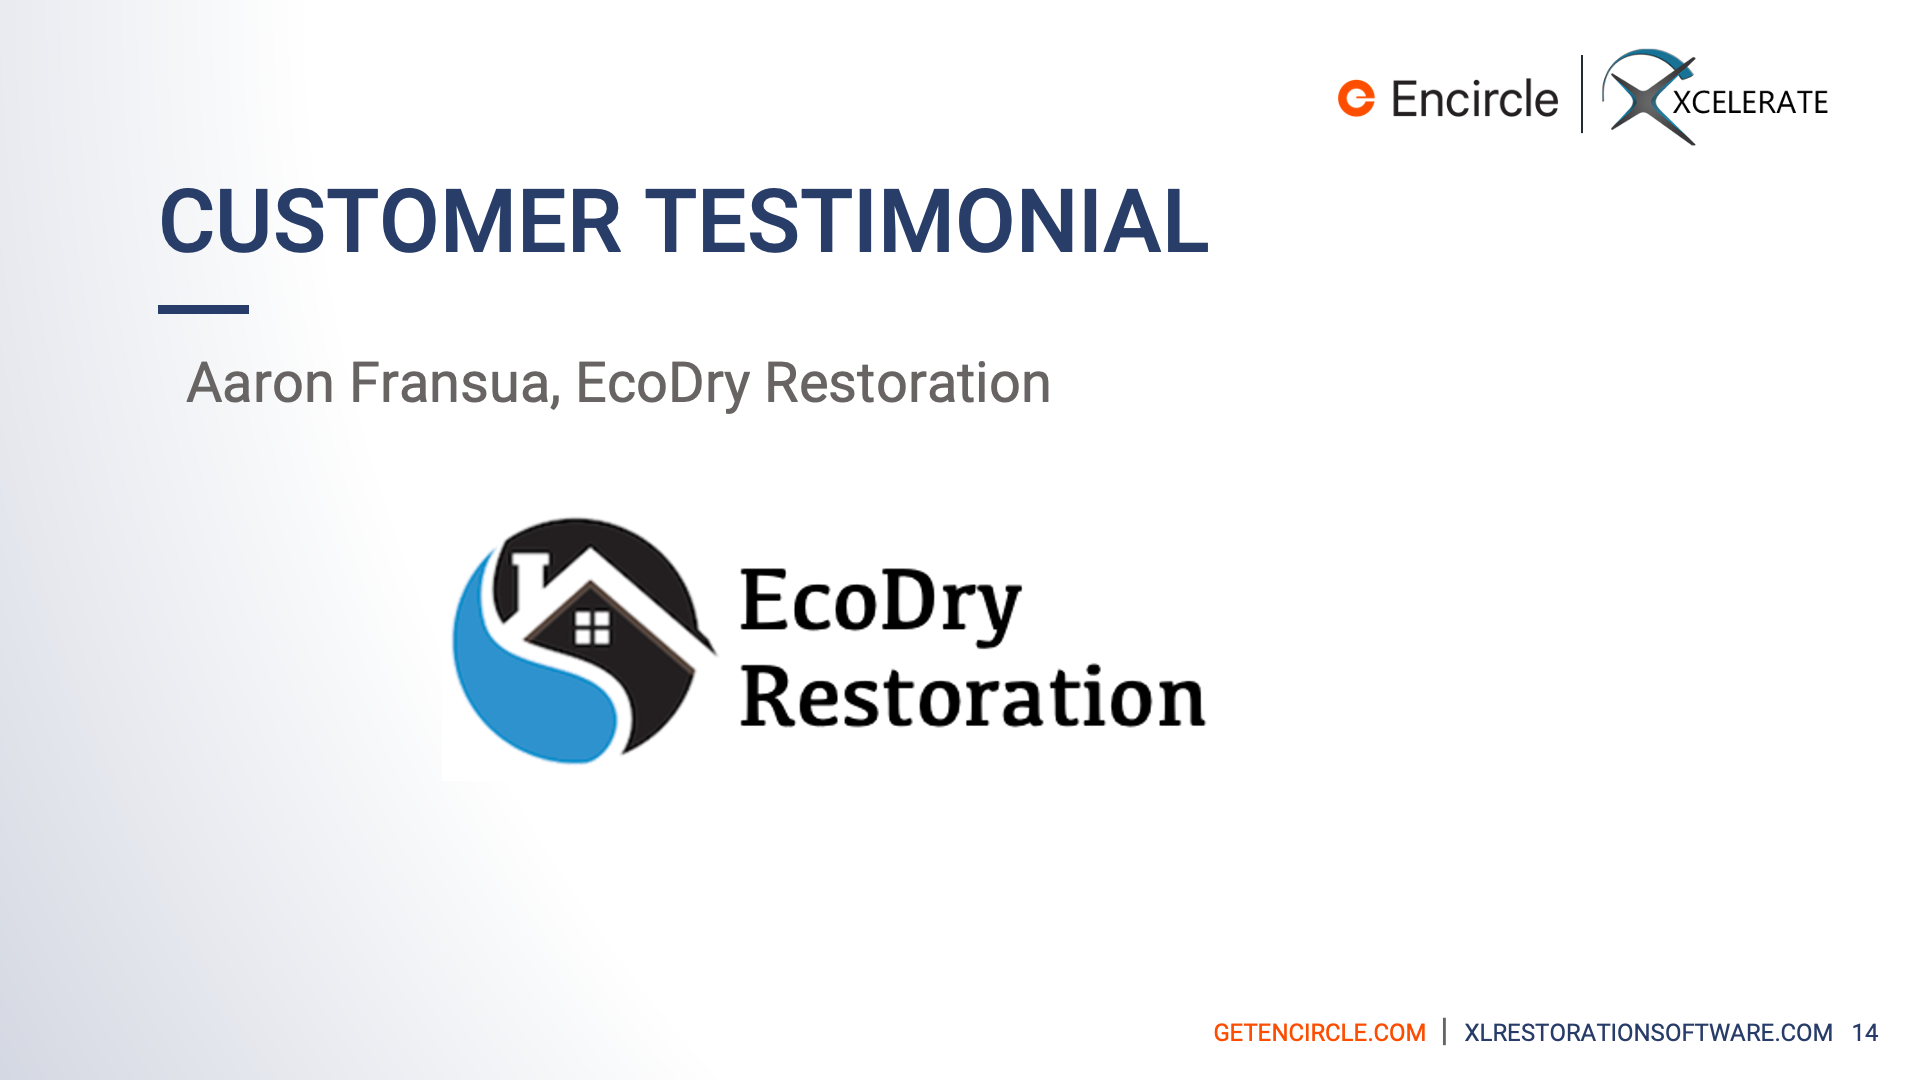 4-Mitigation-Company-EcoDry-talks-Challenges-Addressed-Using-Encircle-n-Xcelerate